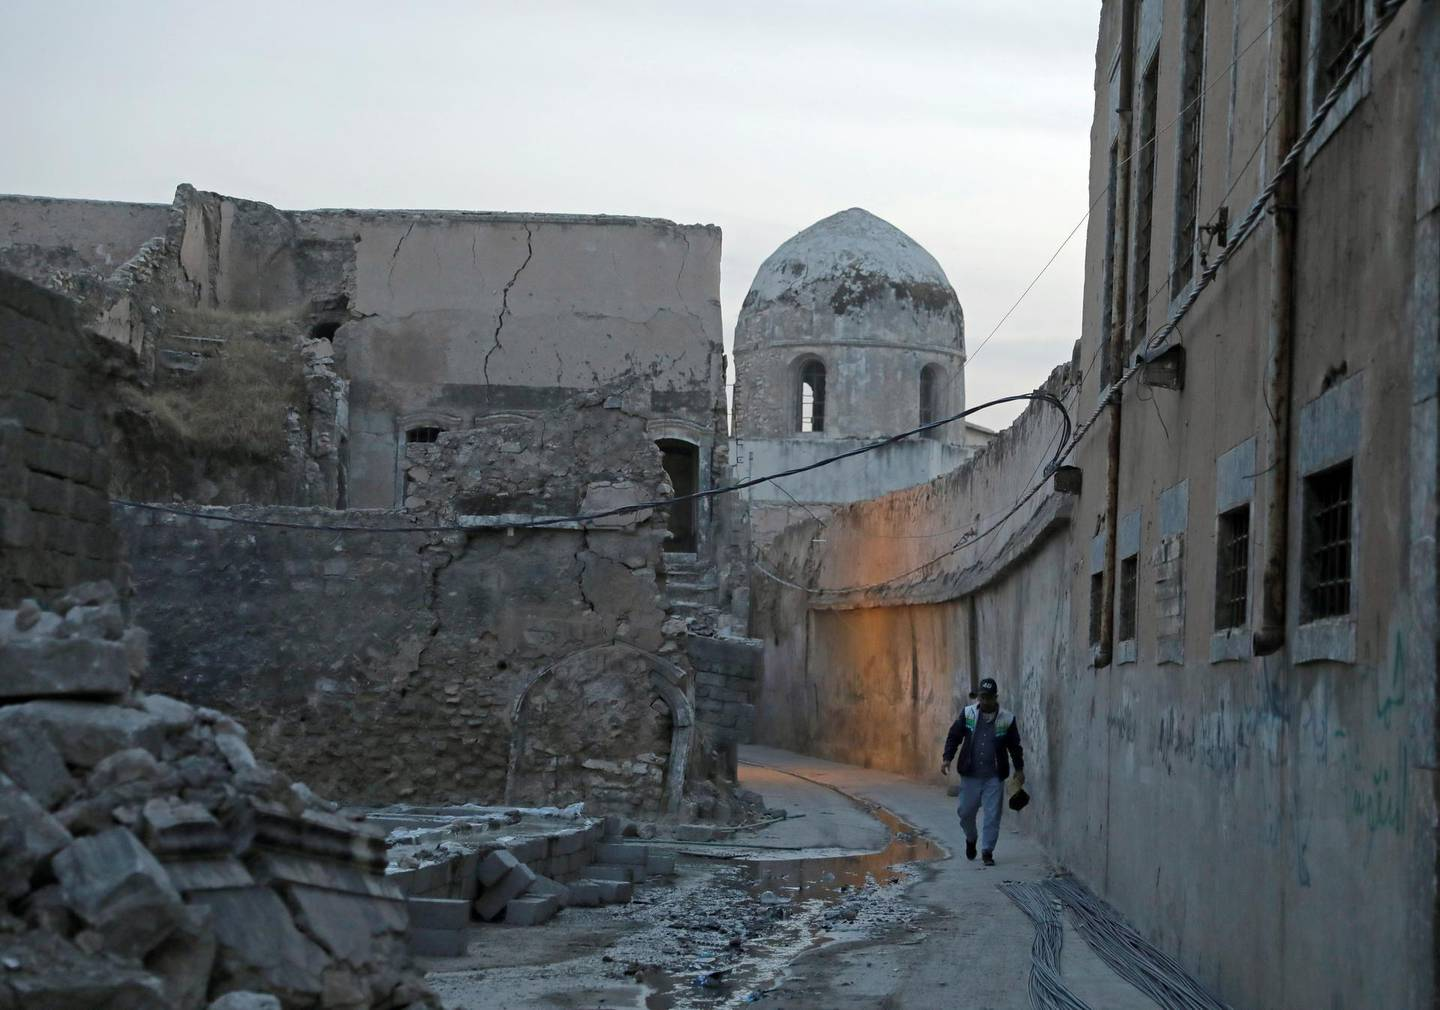 A man walks near the Church of Saint Thomas, in the Old City of Mosul, Iraq October 28, 2020. Picture taken October 28, 2020. REUTERS/Abdullah Rashid